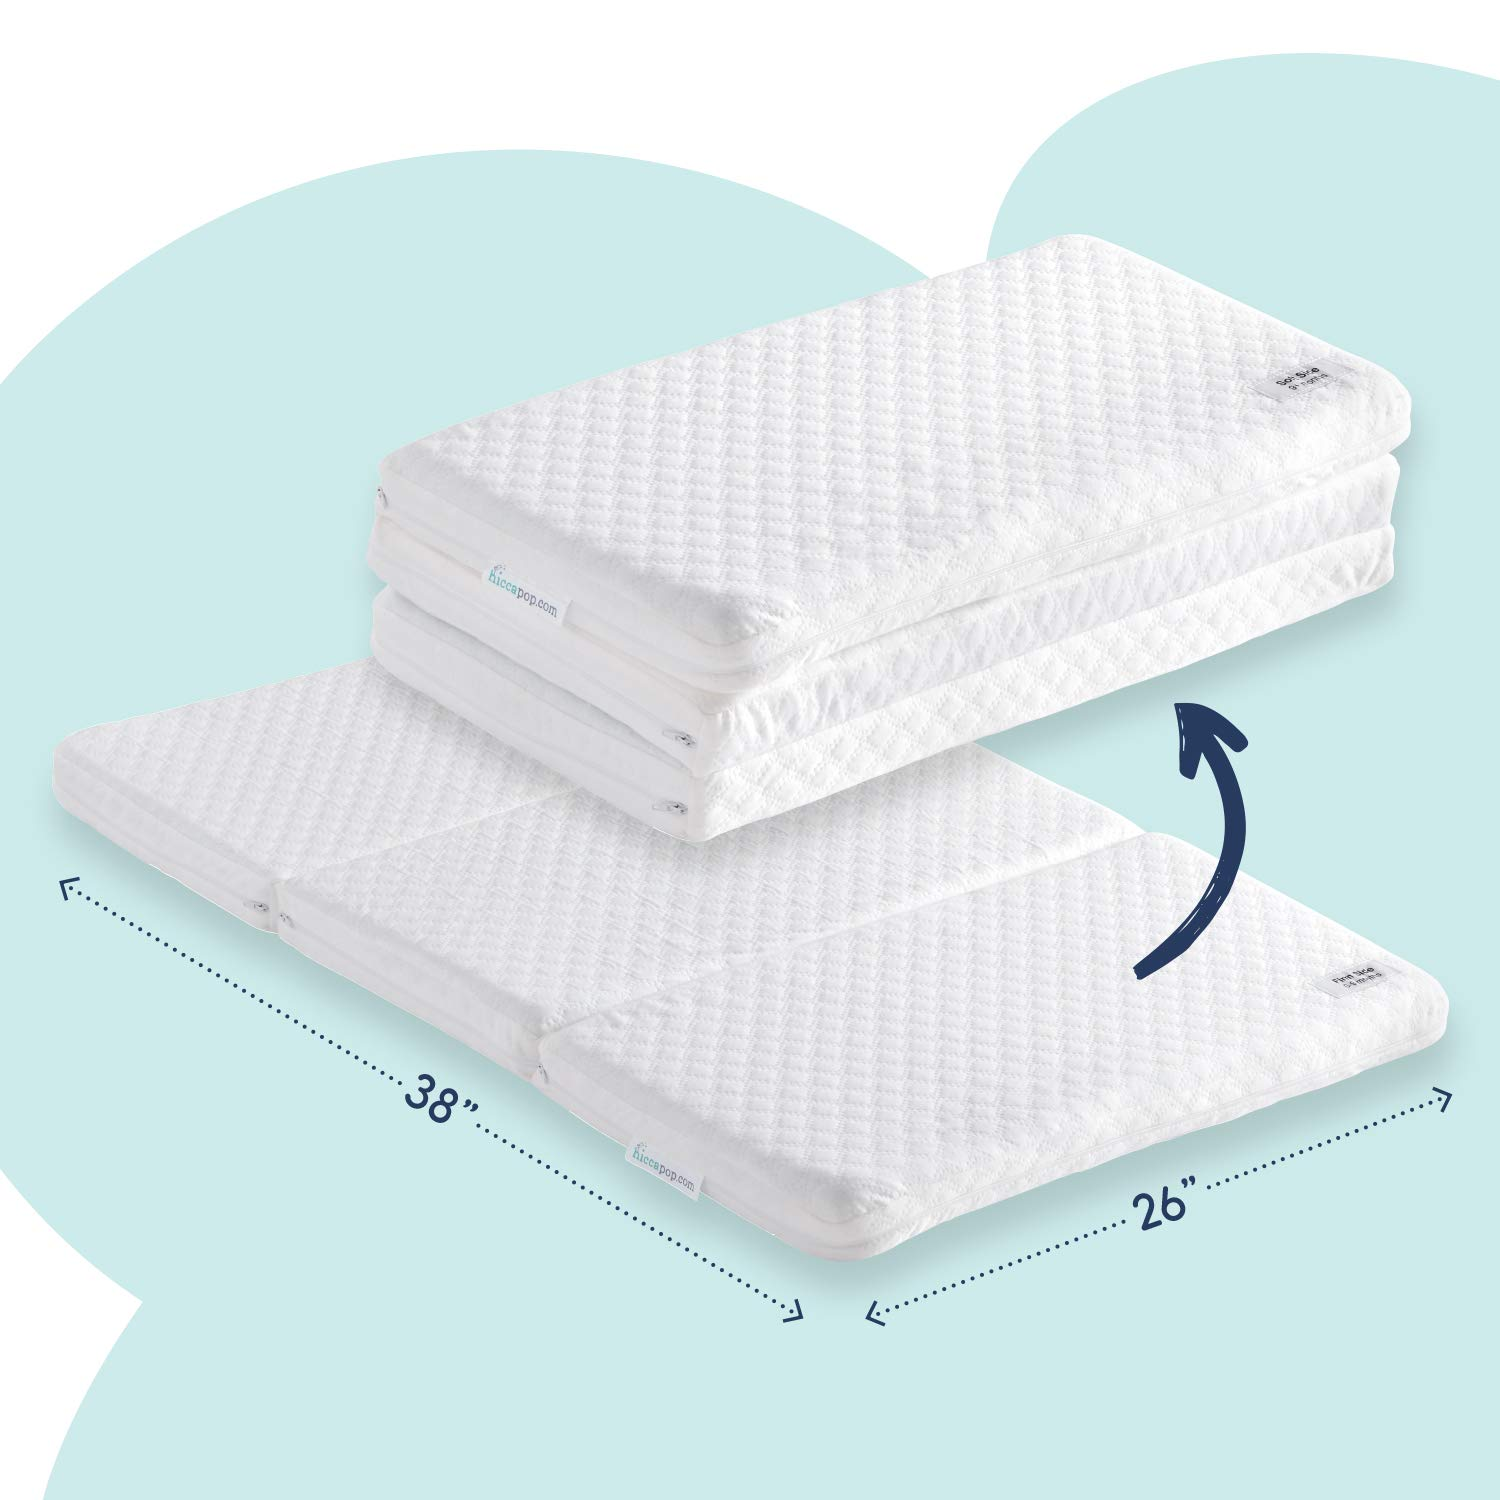 hiccapop Tri fold Best Pack n Play Mattress